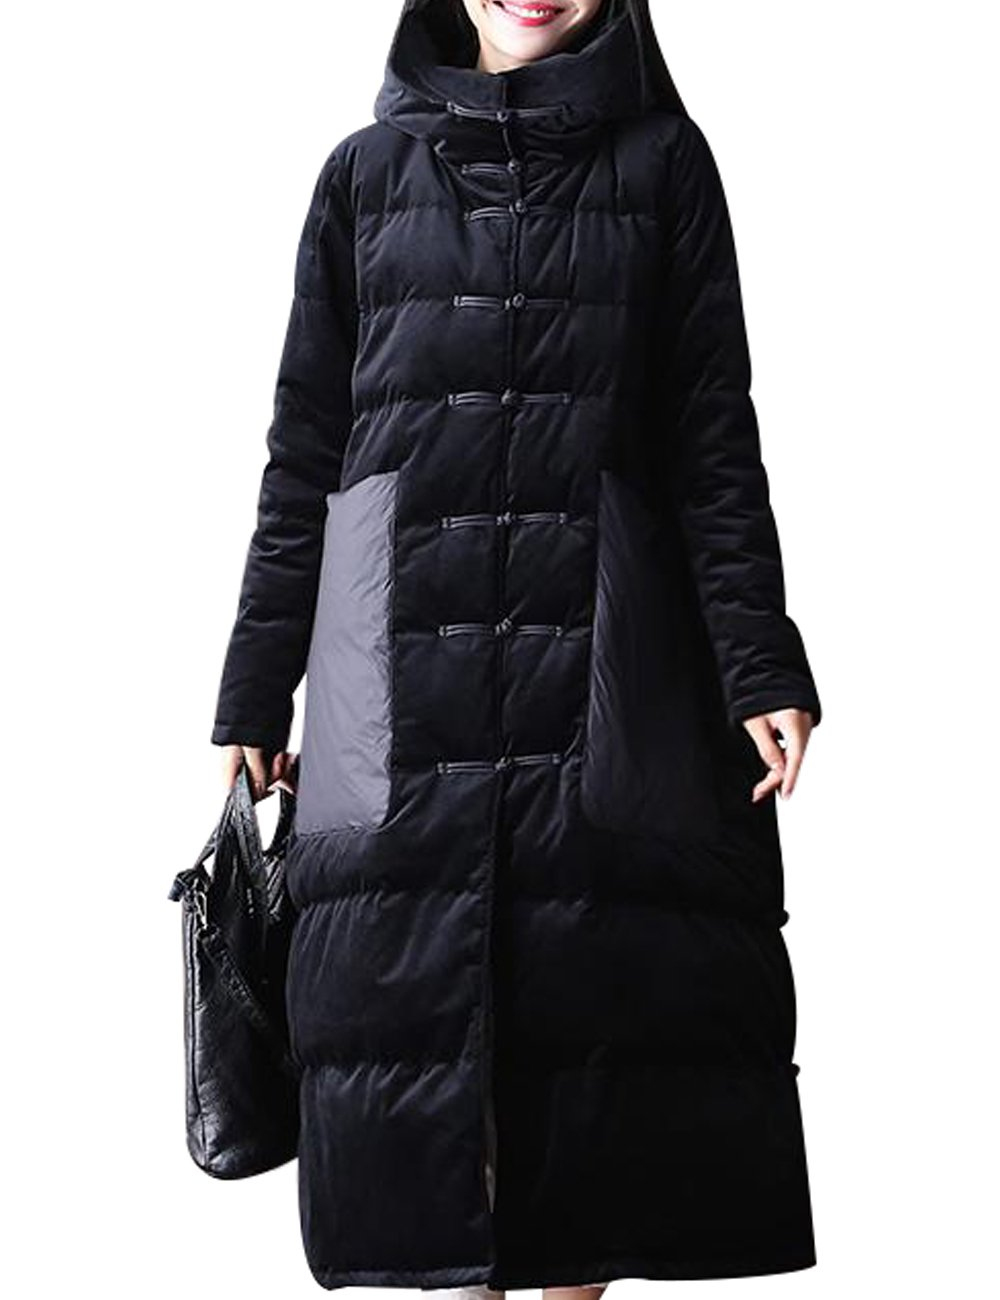 Zoulee Women's Long Maxi Chinese Frog Down Coat with Hood Front Two Pockets Style 1 Size XL